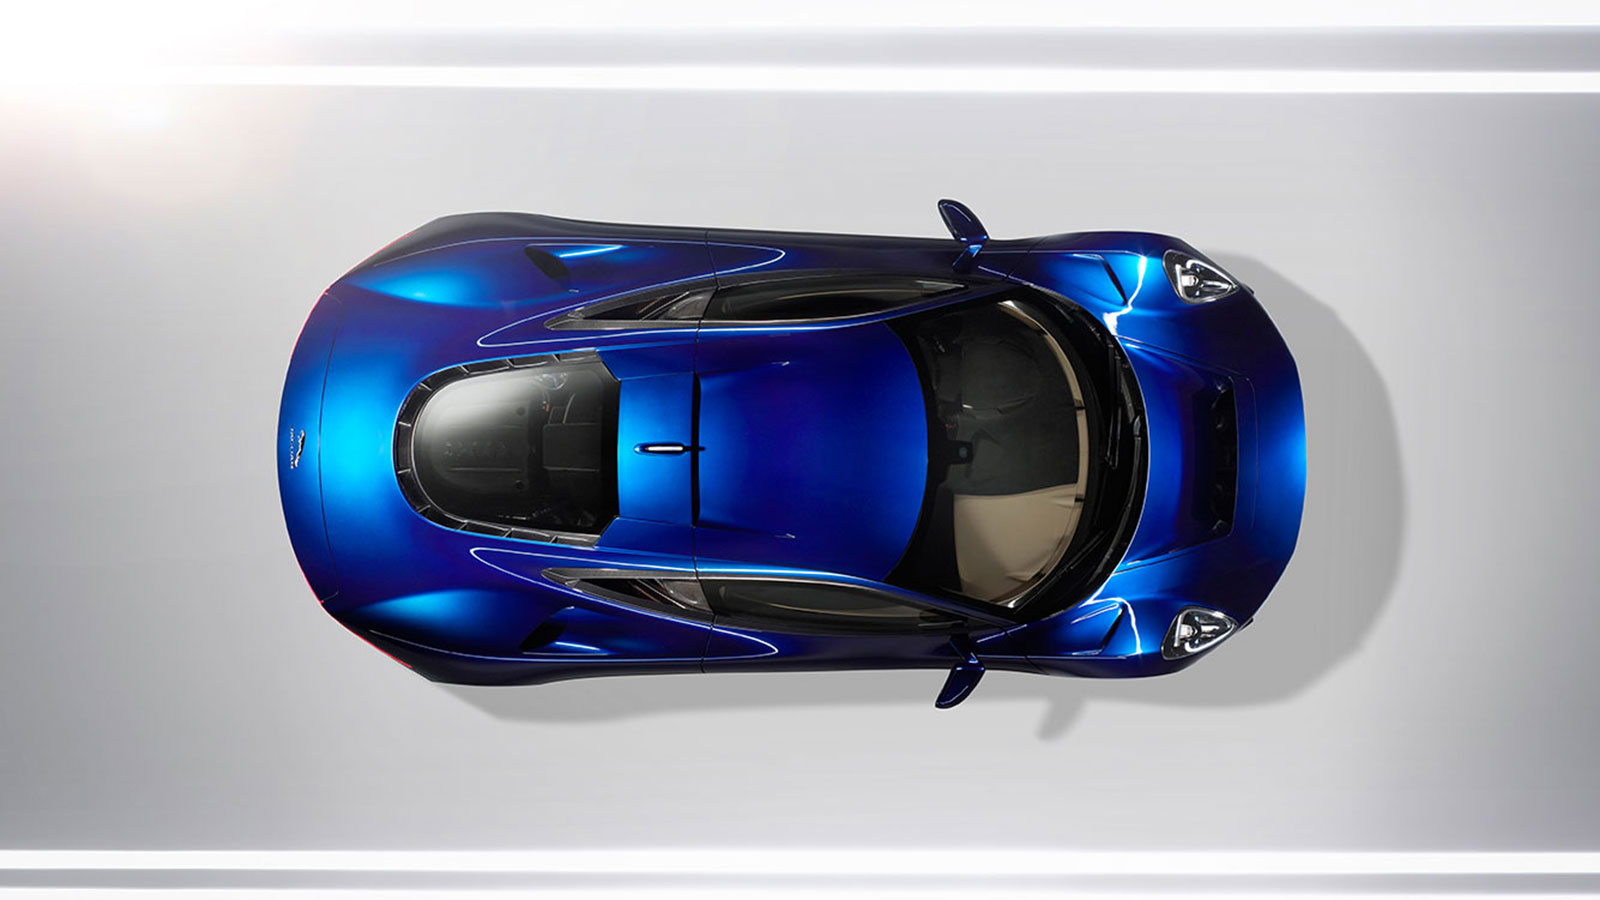 Above shot of Blue Jaguar C-X75 parked within a white studio.